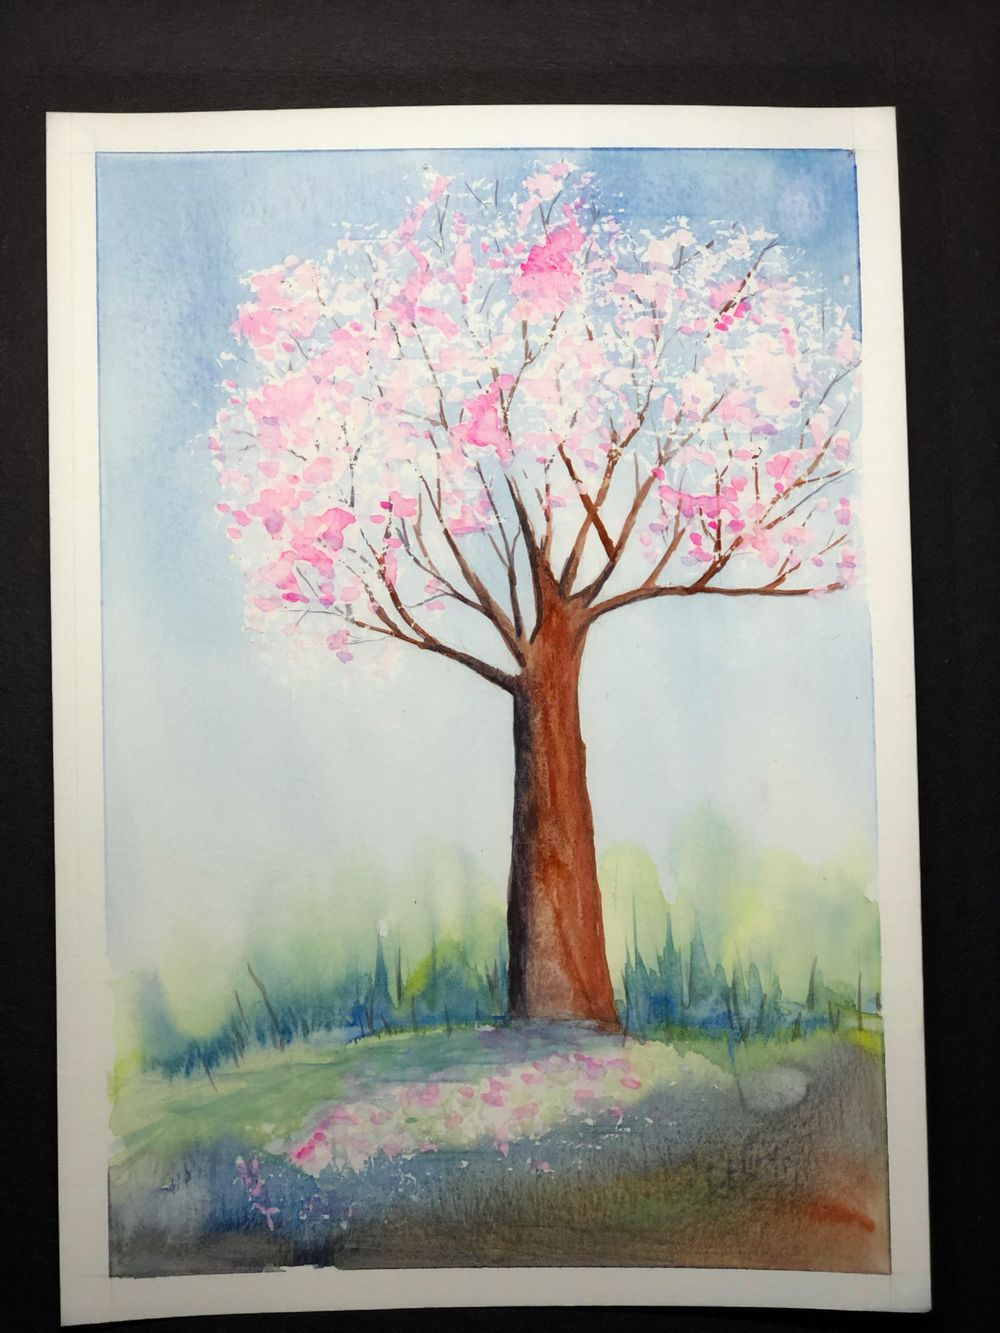 Deciduous Trees - image 2 - student project